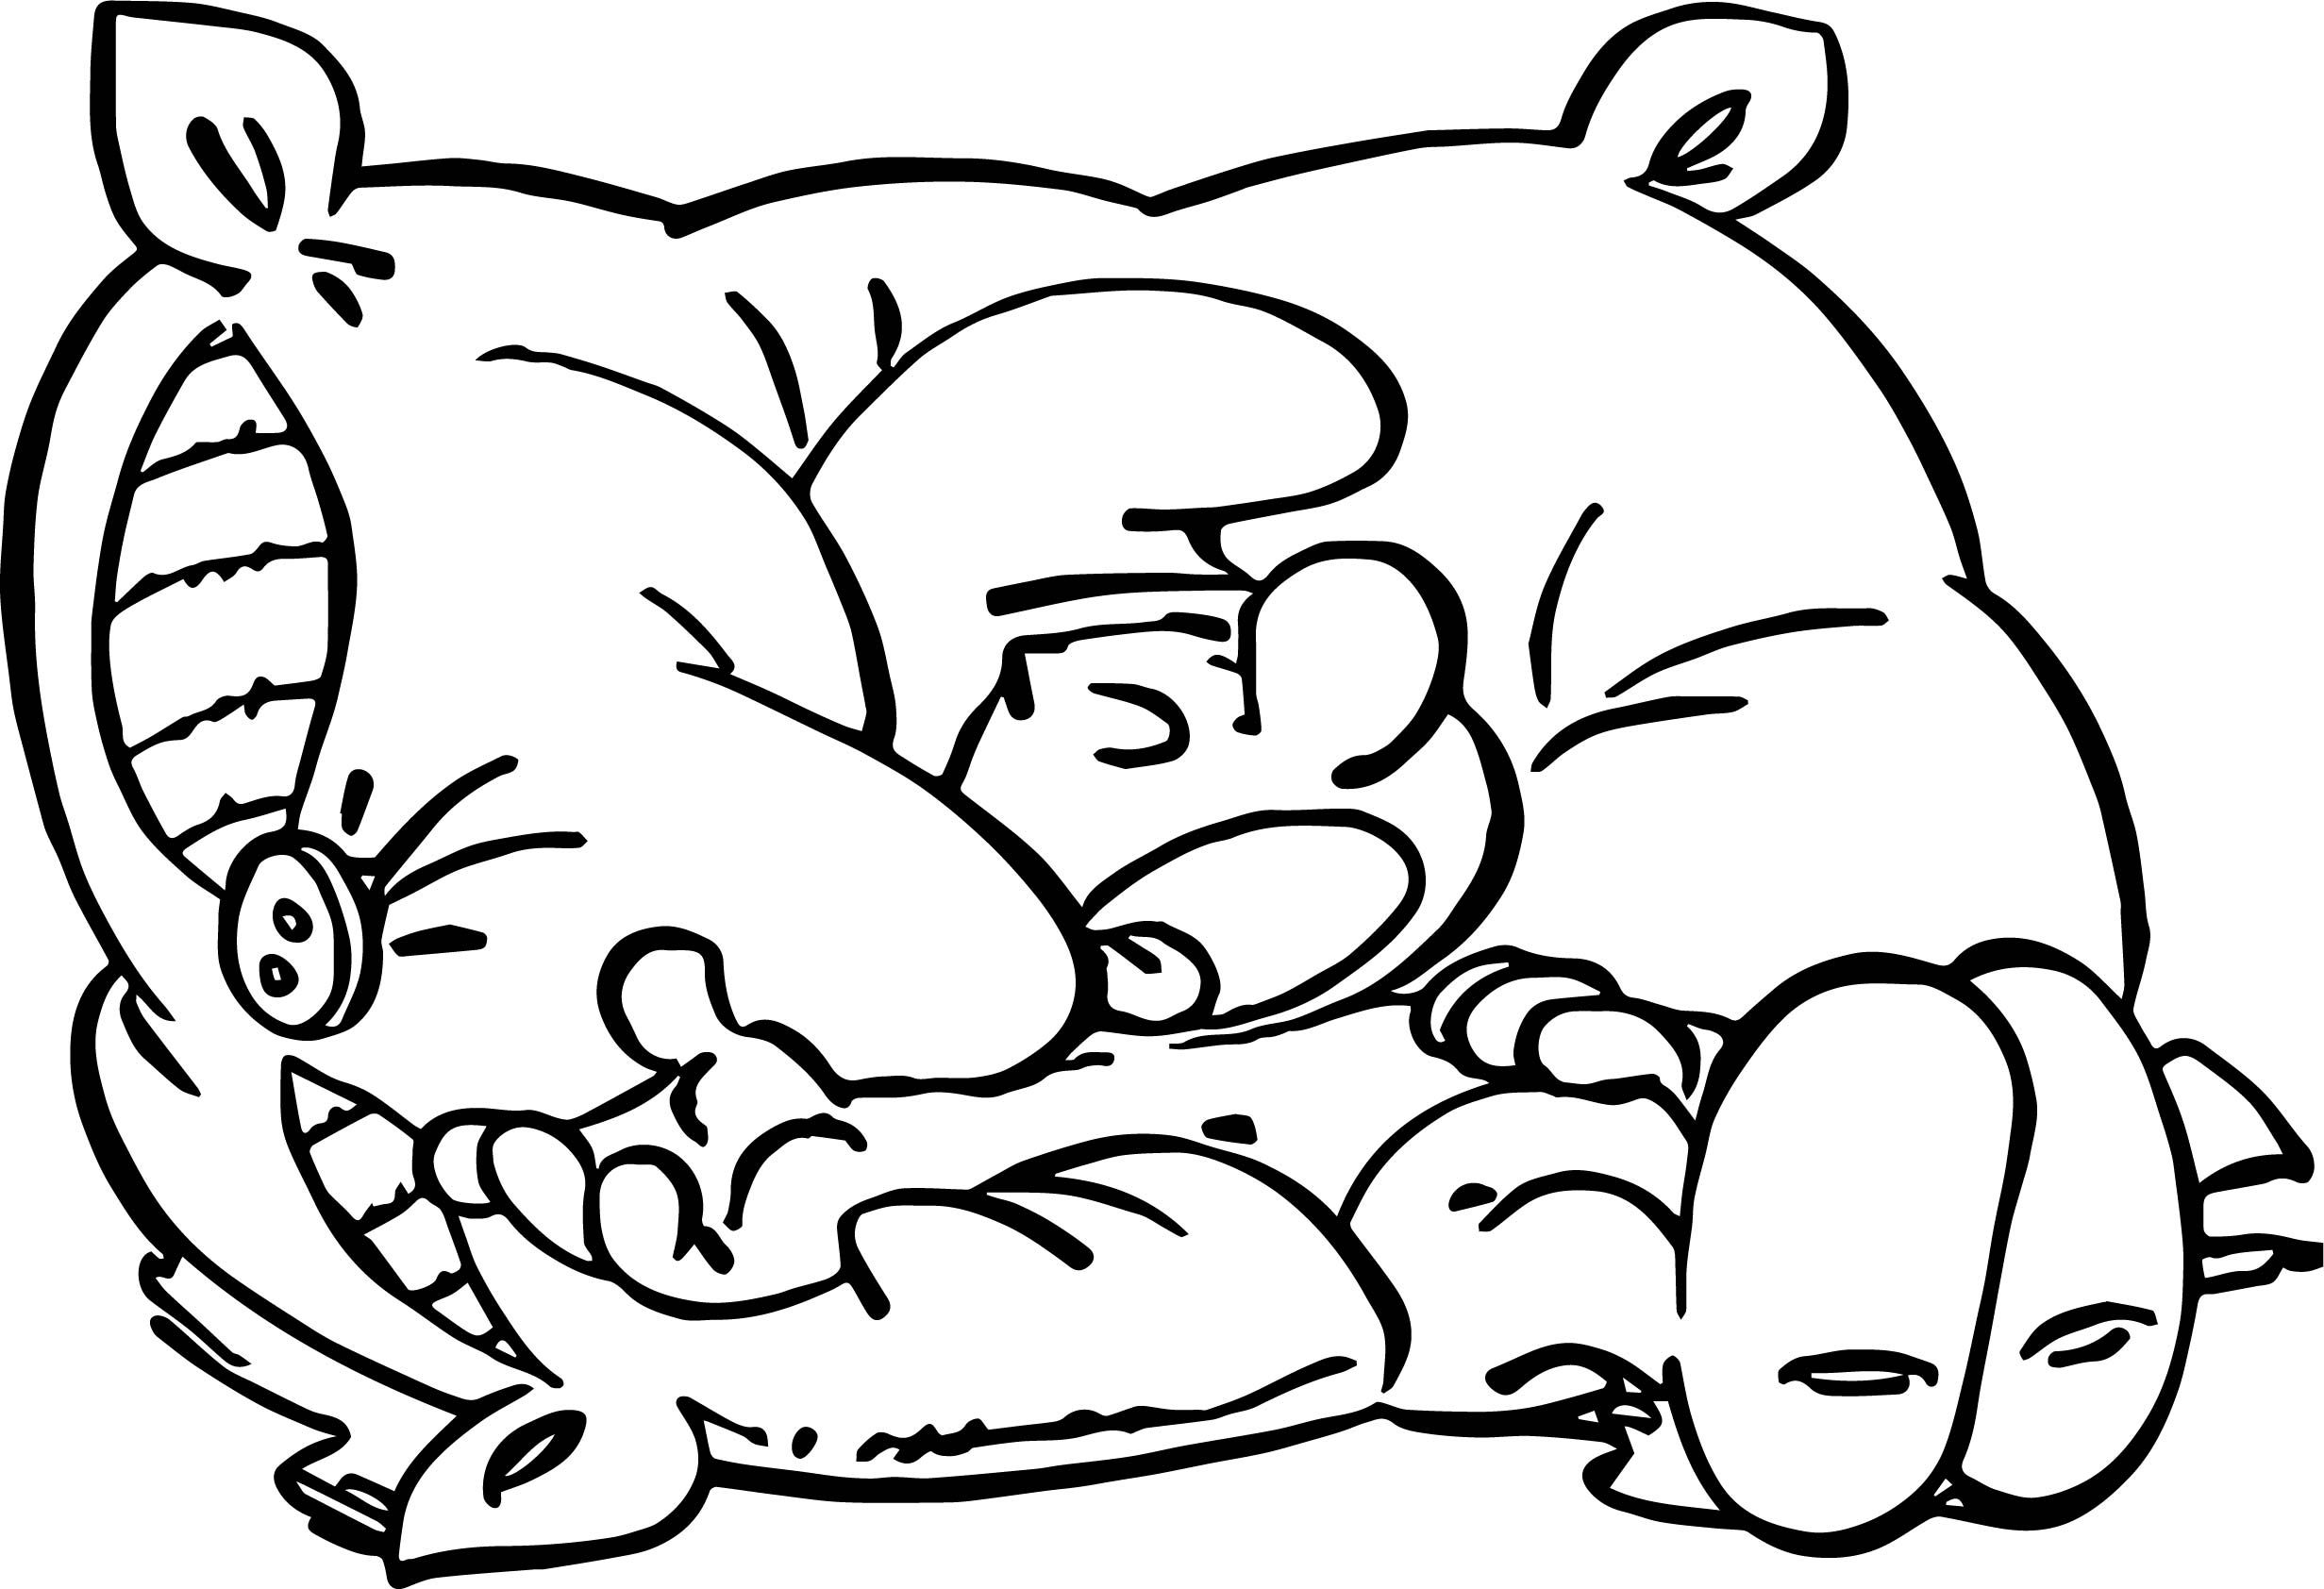 Cool Sleepy Smurf On Pillow Coloring Page Christmas Present